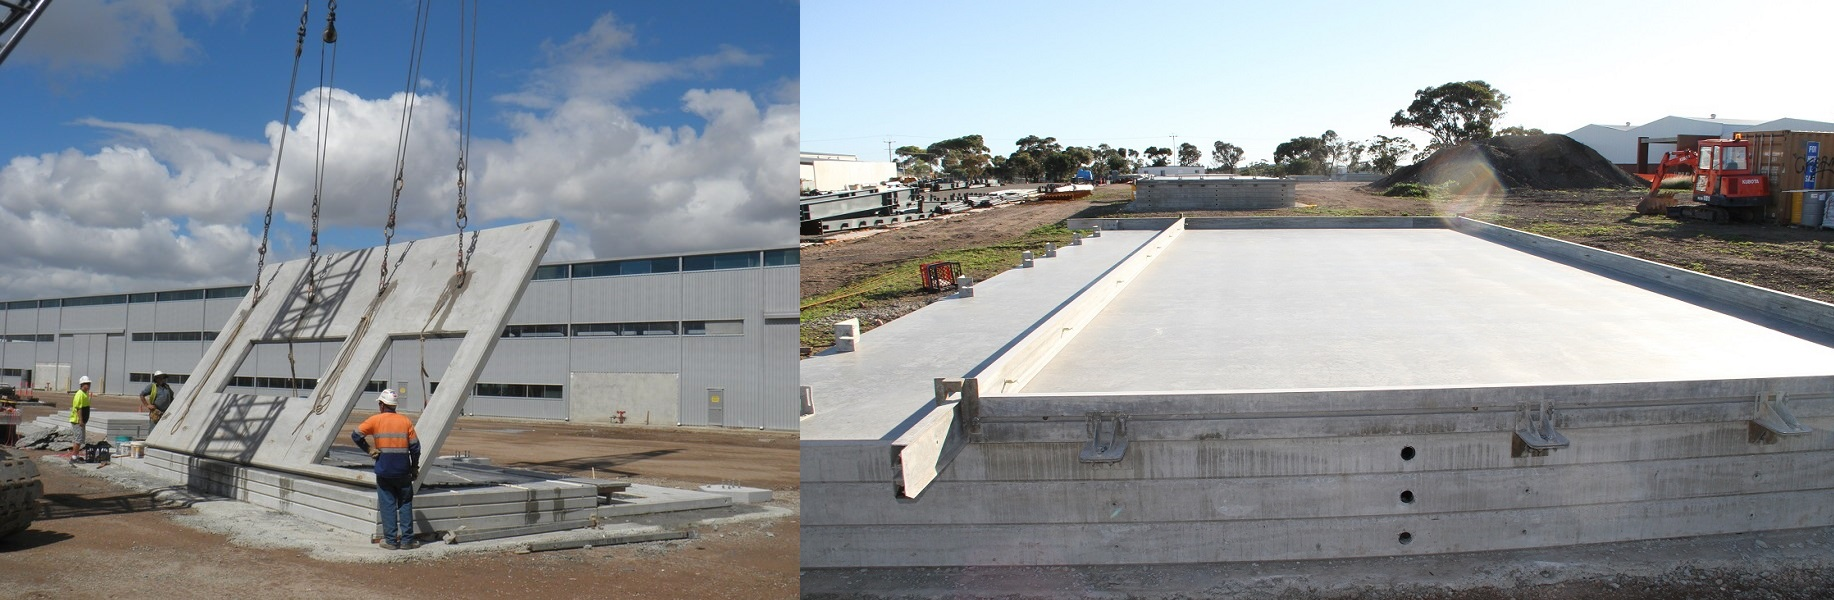 Panelware, Easier, Better and Faster Tiltup Construction